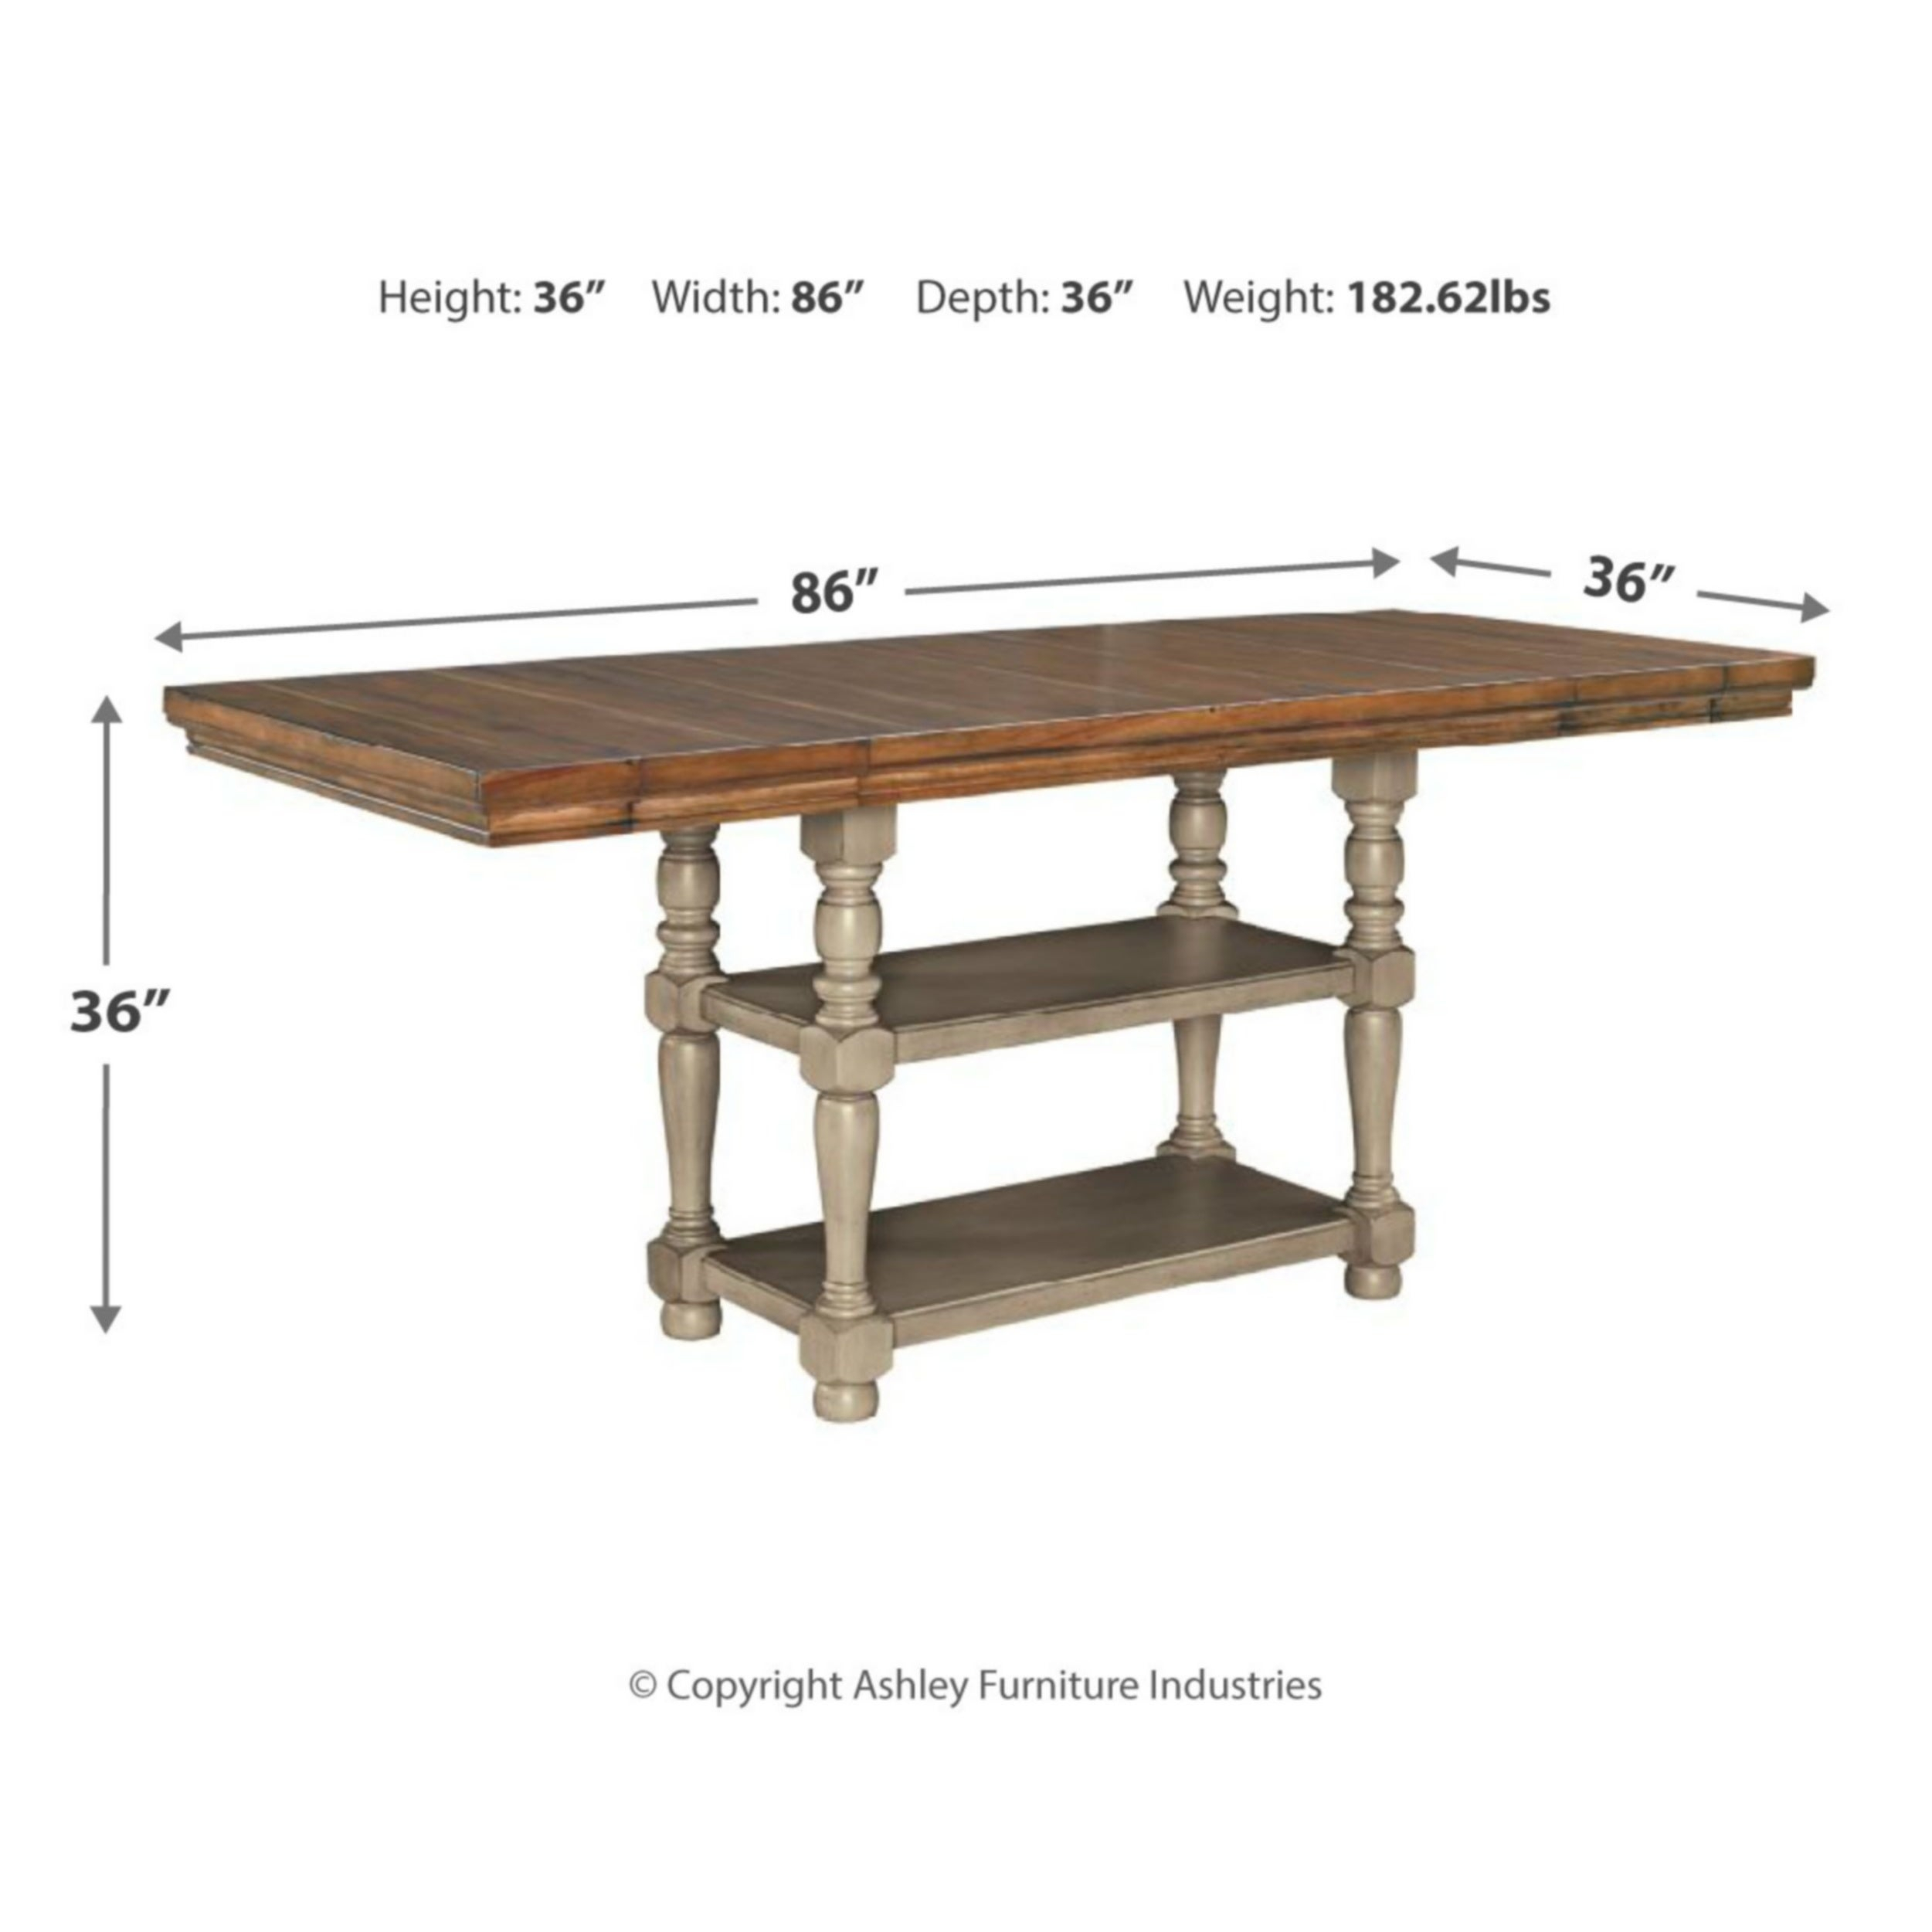 Lettner Rectangular Dining Room Counter Extension Table – Gray/brown Within Most Up To Date Griffin Reclaimed Wood Bar Height Tables (View 24 of 25)